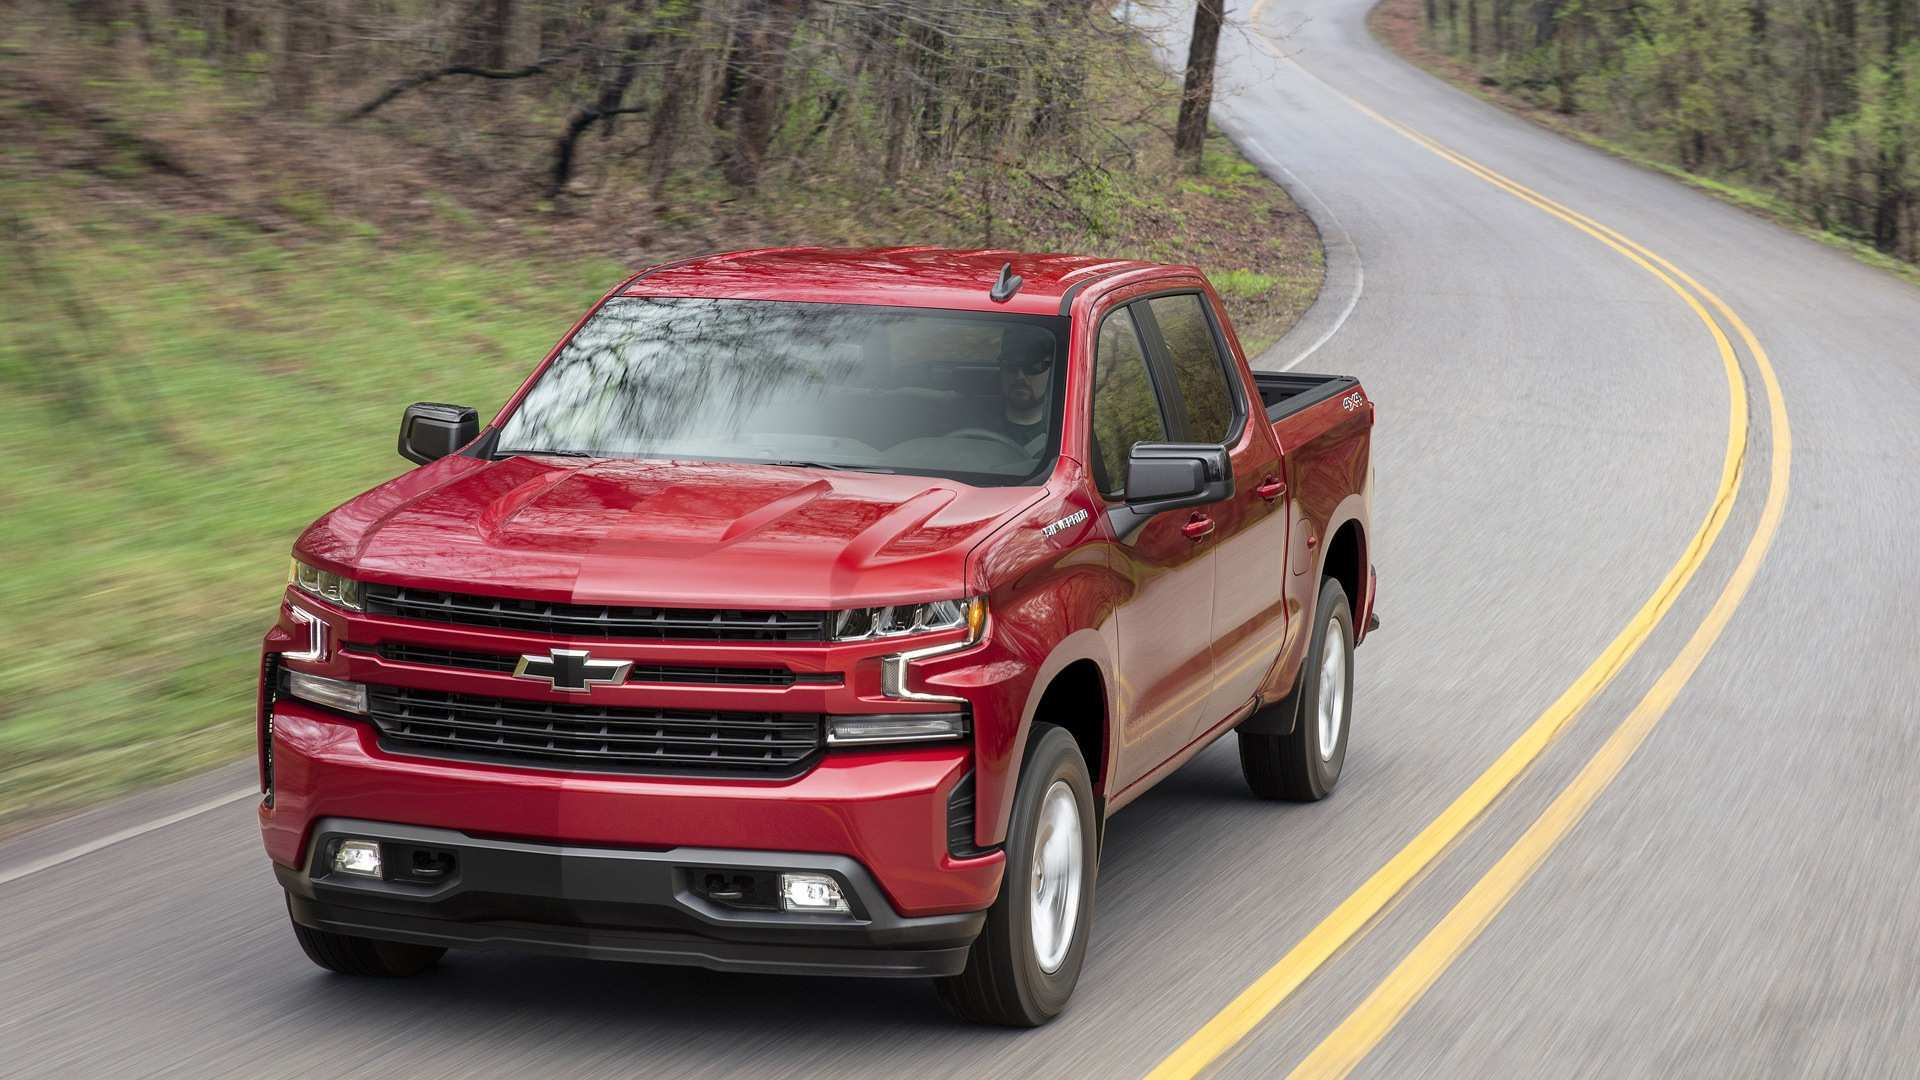 99 New Chevrolet Silverado 2020 Photoshop Price